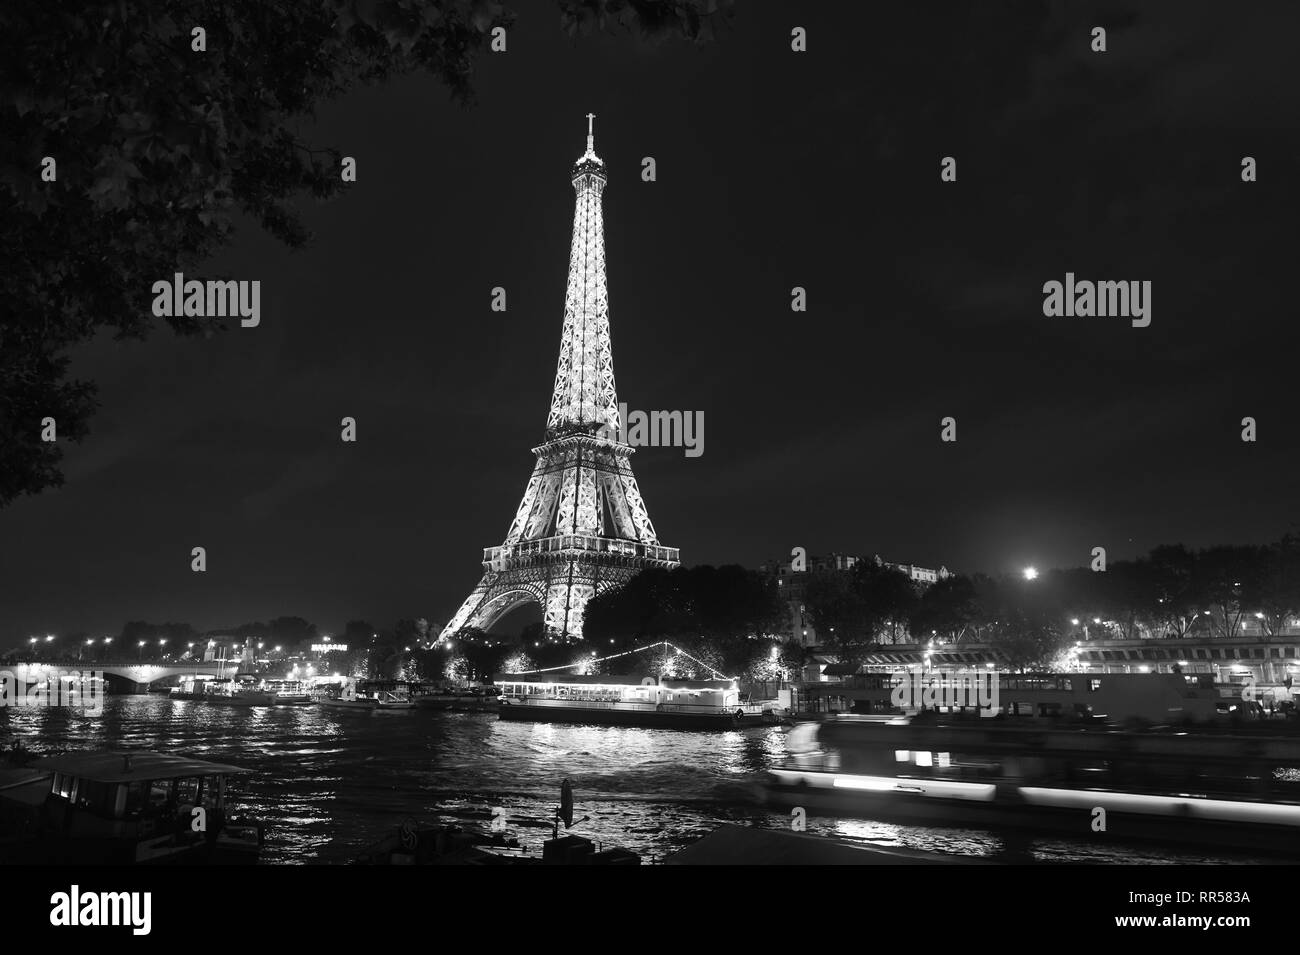 Paris, France - September 23, 2017: paris eiffel tower in france. Tour and travel. Discover the eiffel tower. The Eiffel tower is iconic structure. - Stock Image